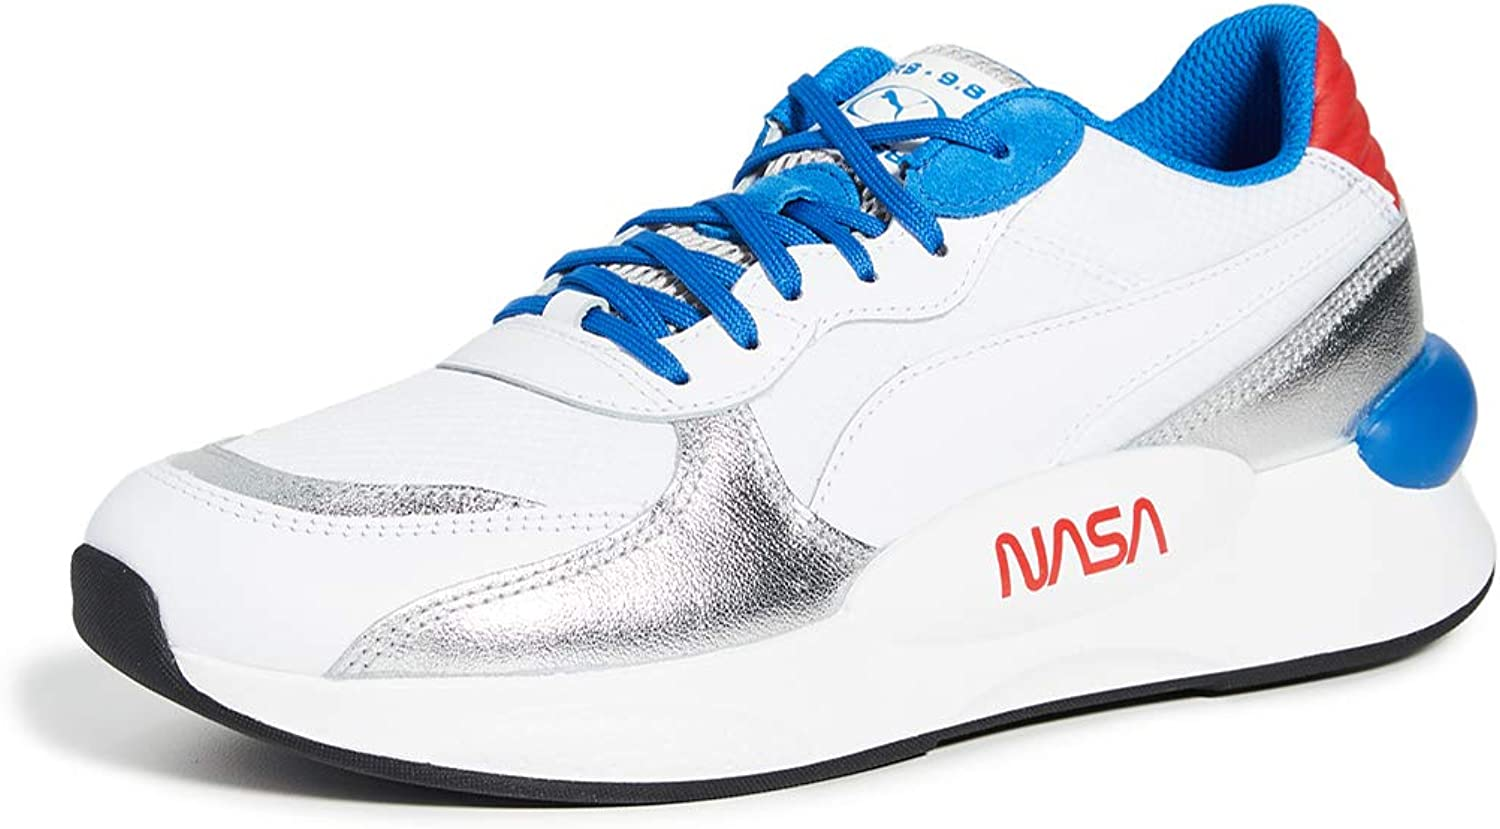 PUMA Select Men's x Space Agency RS 9.8